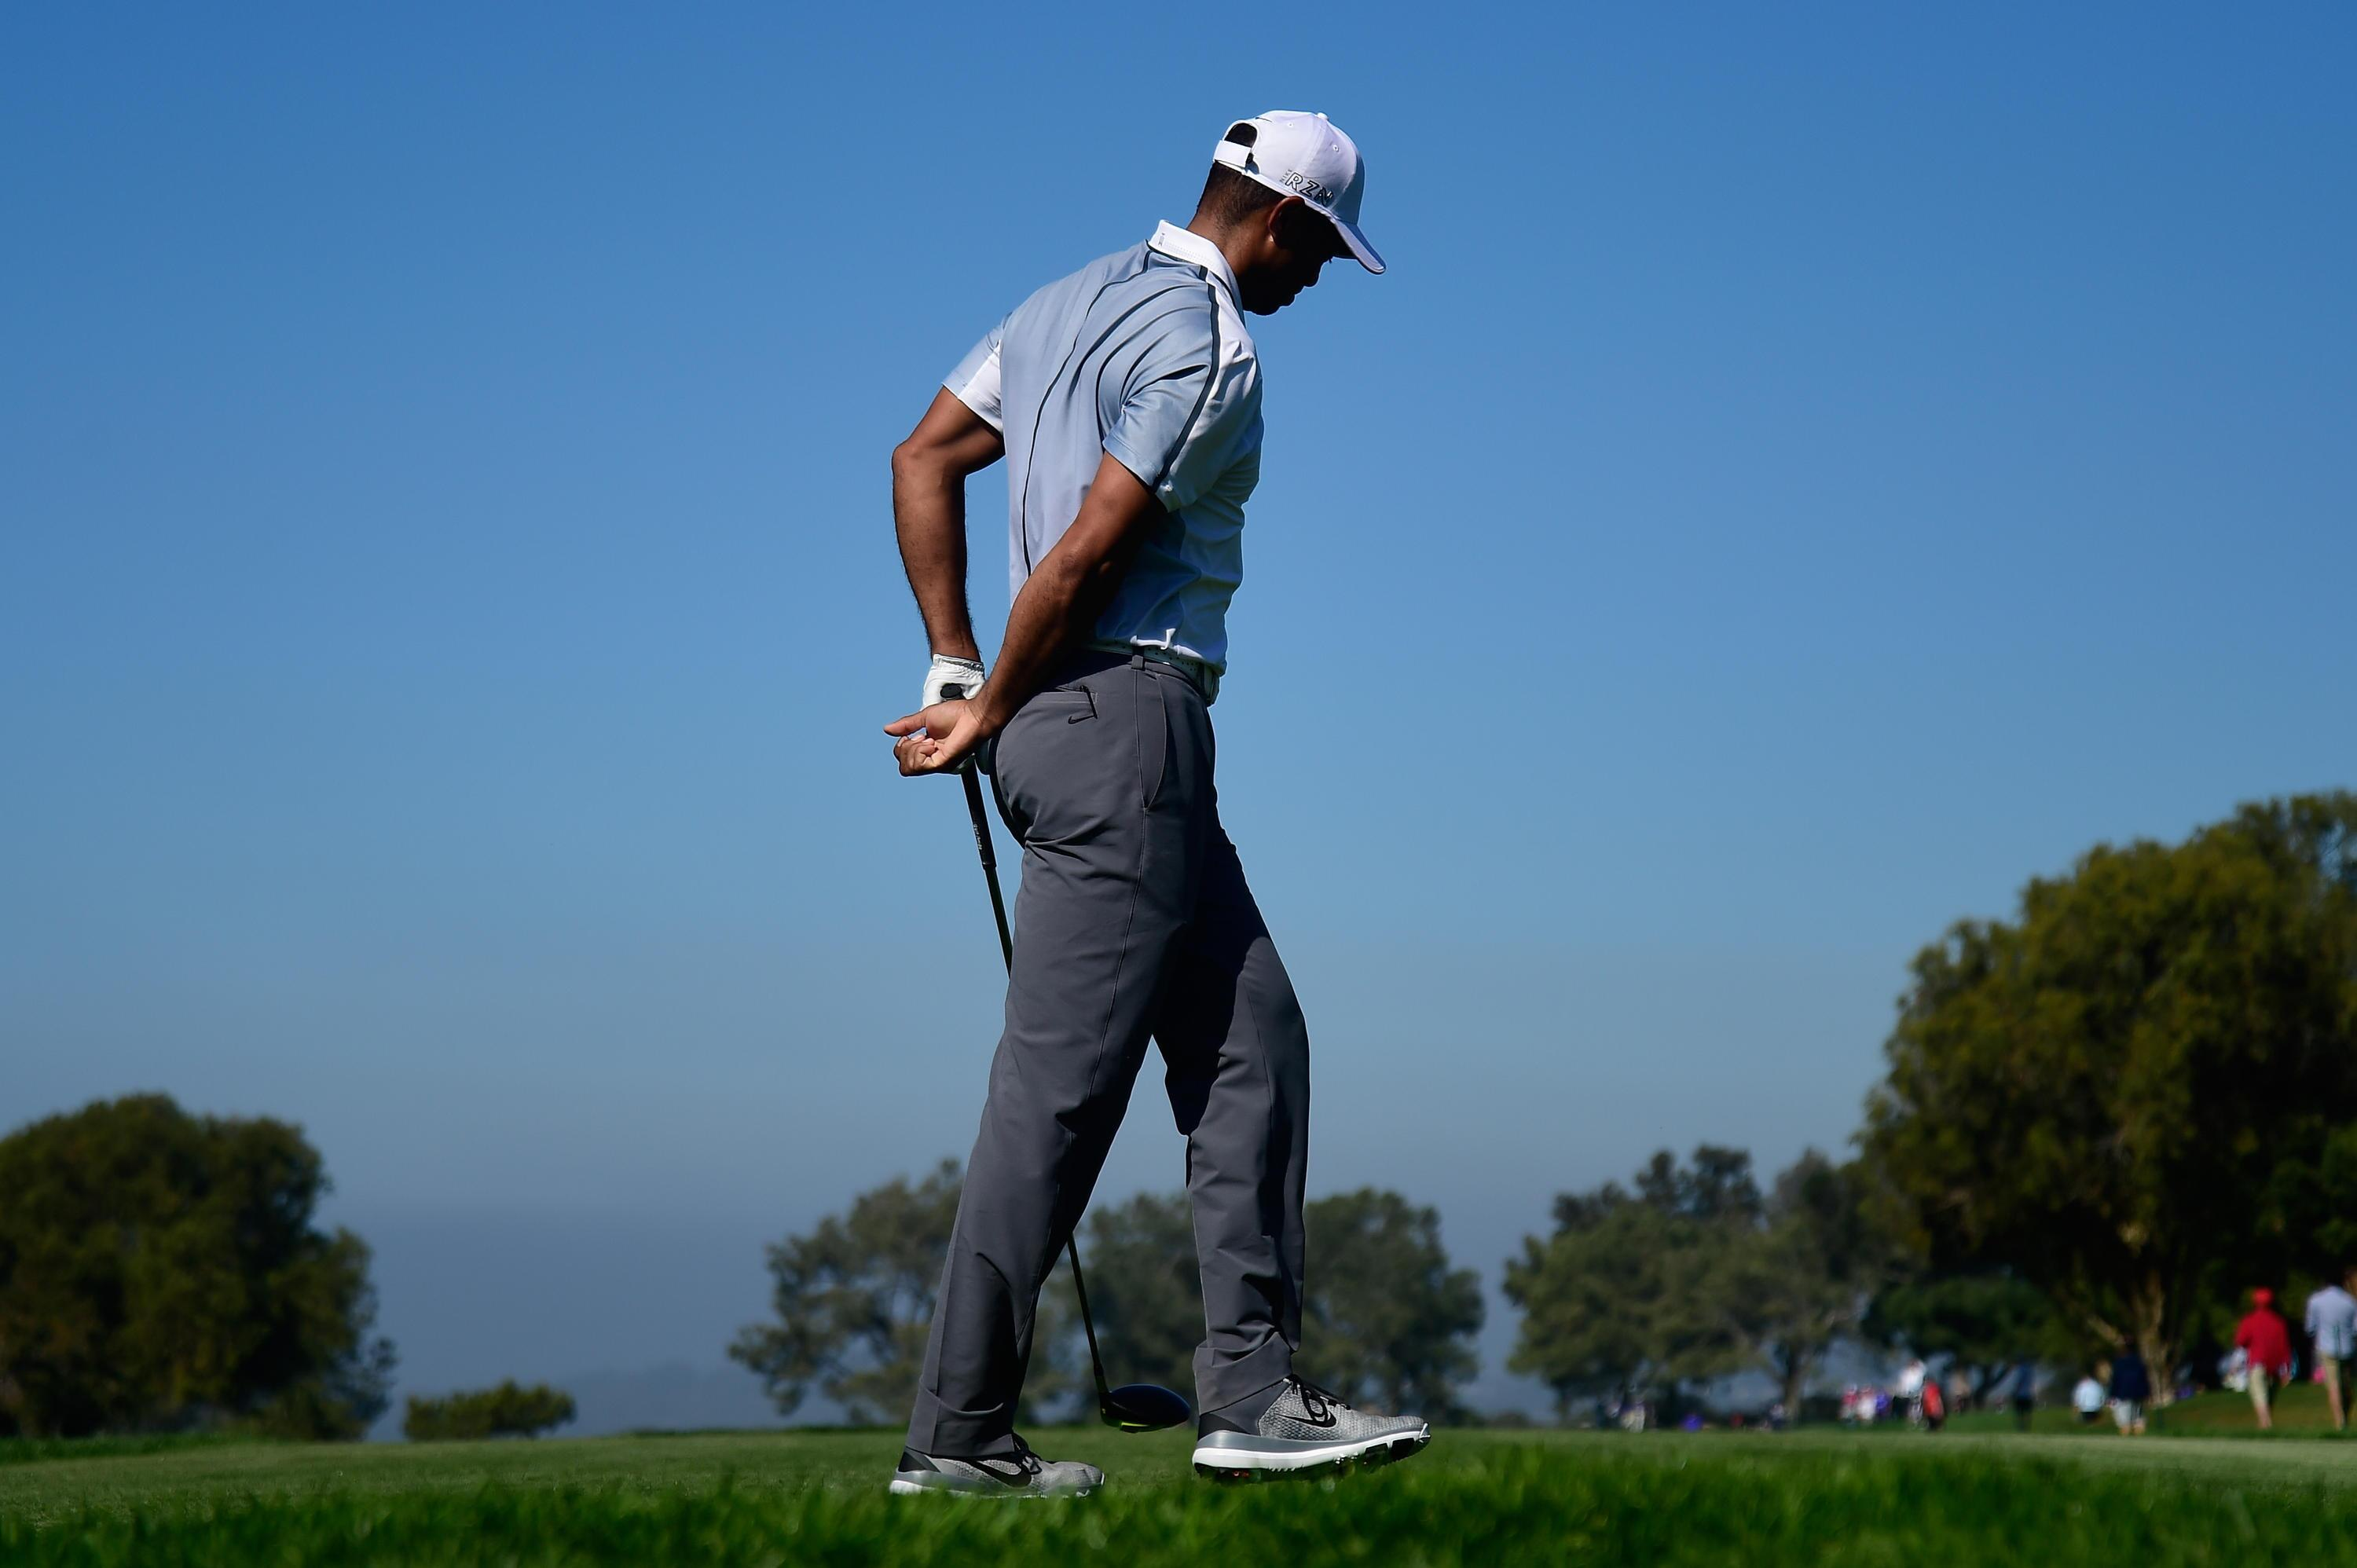 Bild zu Tiger Woods, Farmers Insurance Open, Torrey Pines, La Jolla, Kalifornien, USA, Rücken, Schmerzen